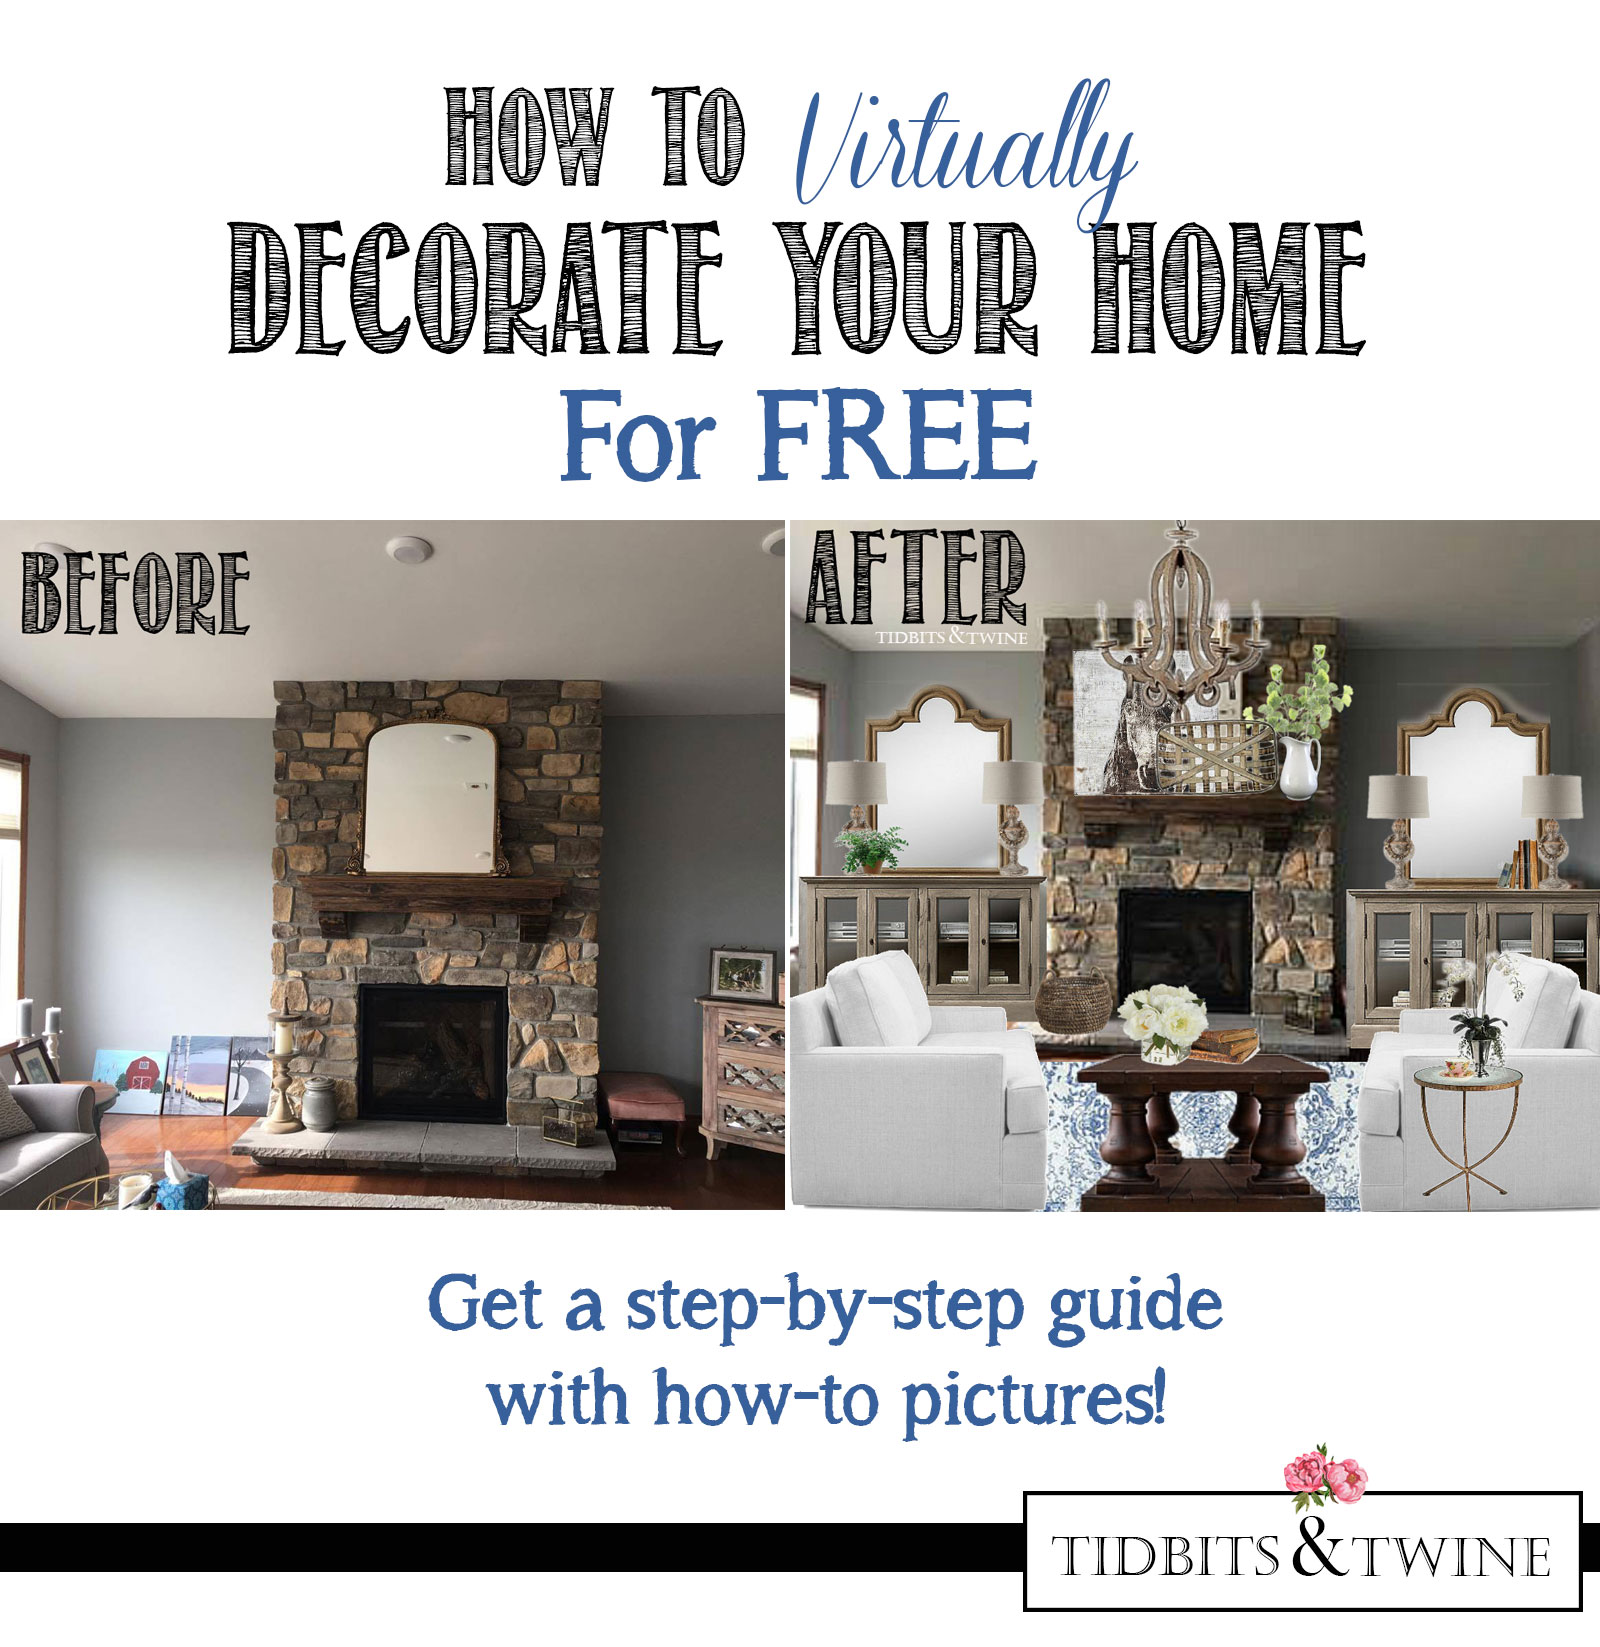 How To Virtually Decorate Your Home